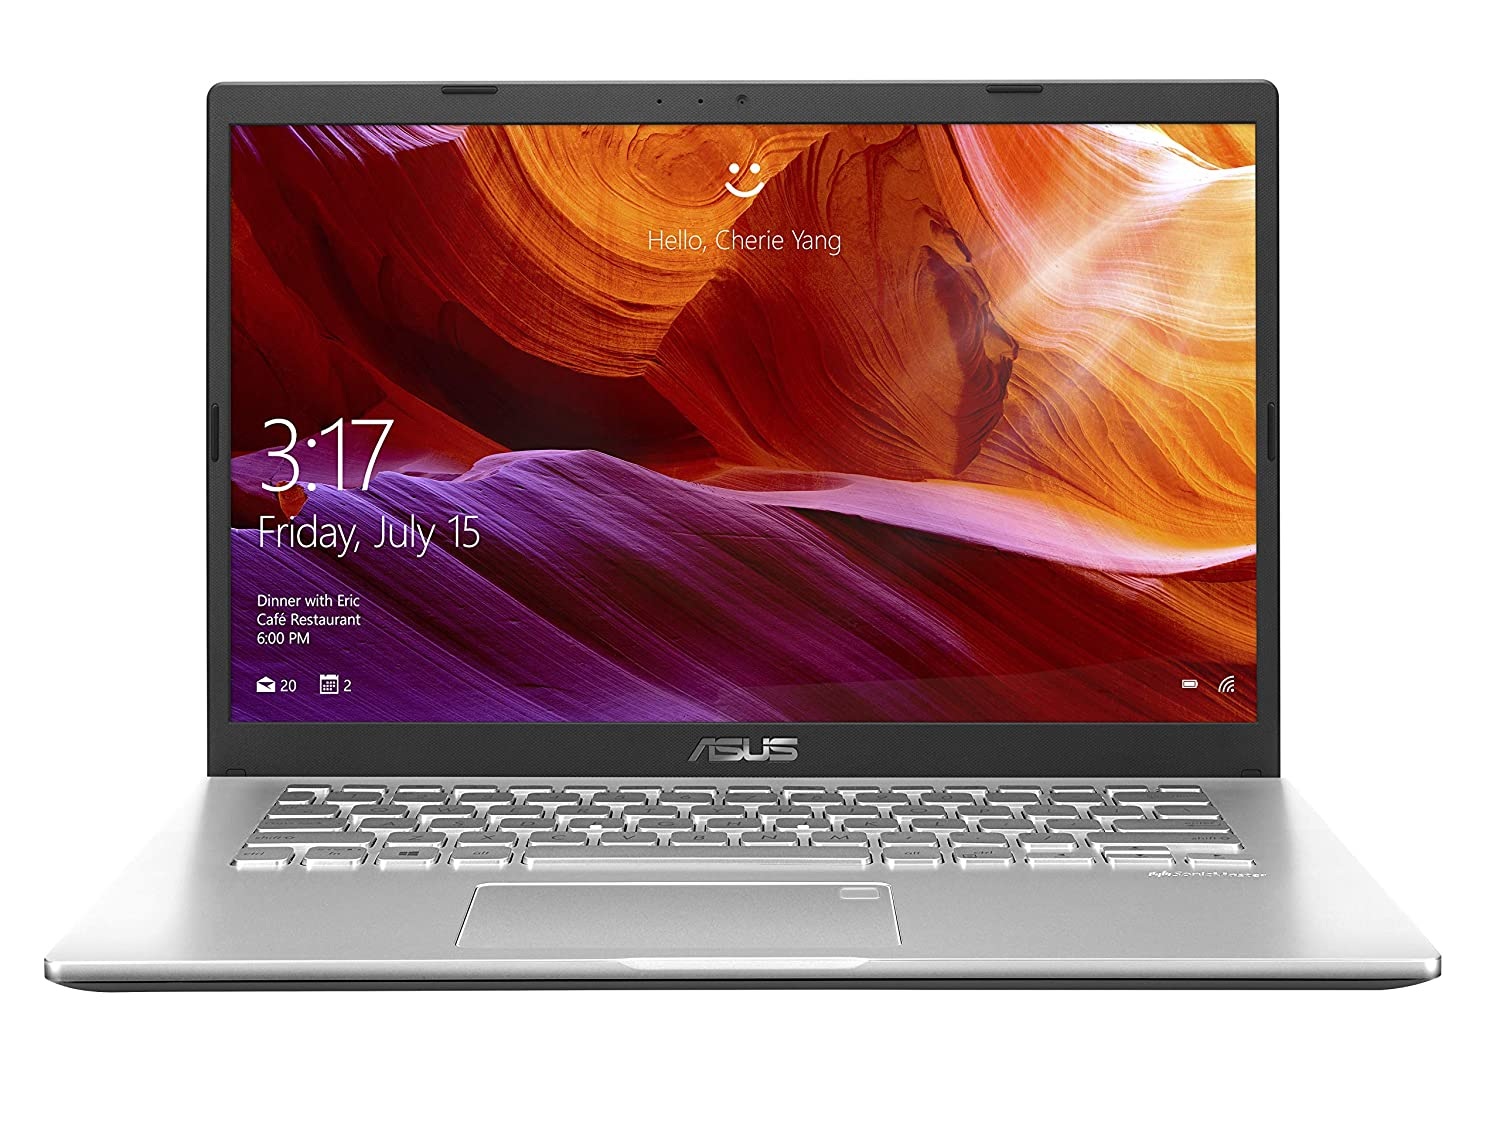 ASUS VivoBook 14 Intel Core i5-1035G1 10th Gen 14-inch FHD Compact and Light Laptop (8GB RAM/512GB NVMe SSD/Windows 10/2GB NVIDIA GeForce MX110 Graphics/Transparent Silver/1.60 kg), X409JB-EK591T